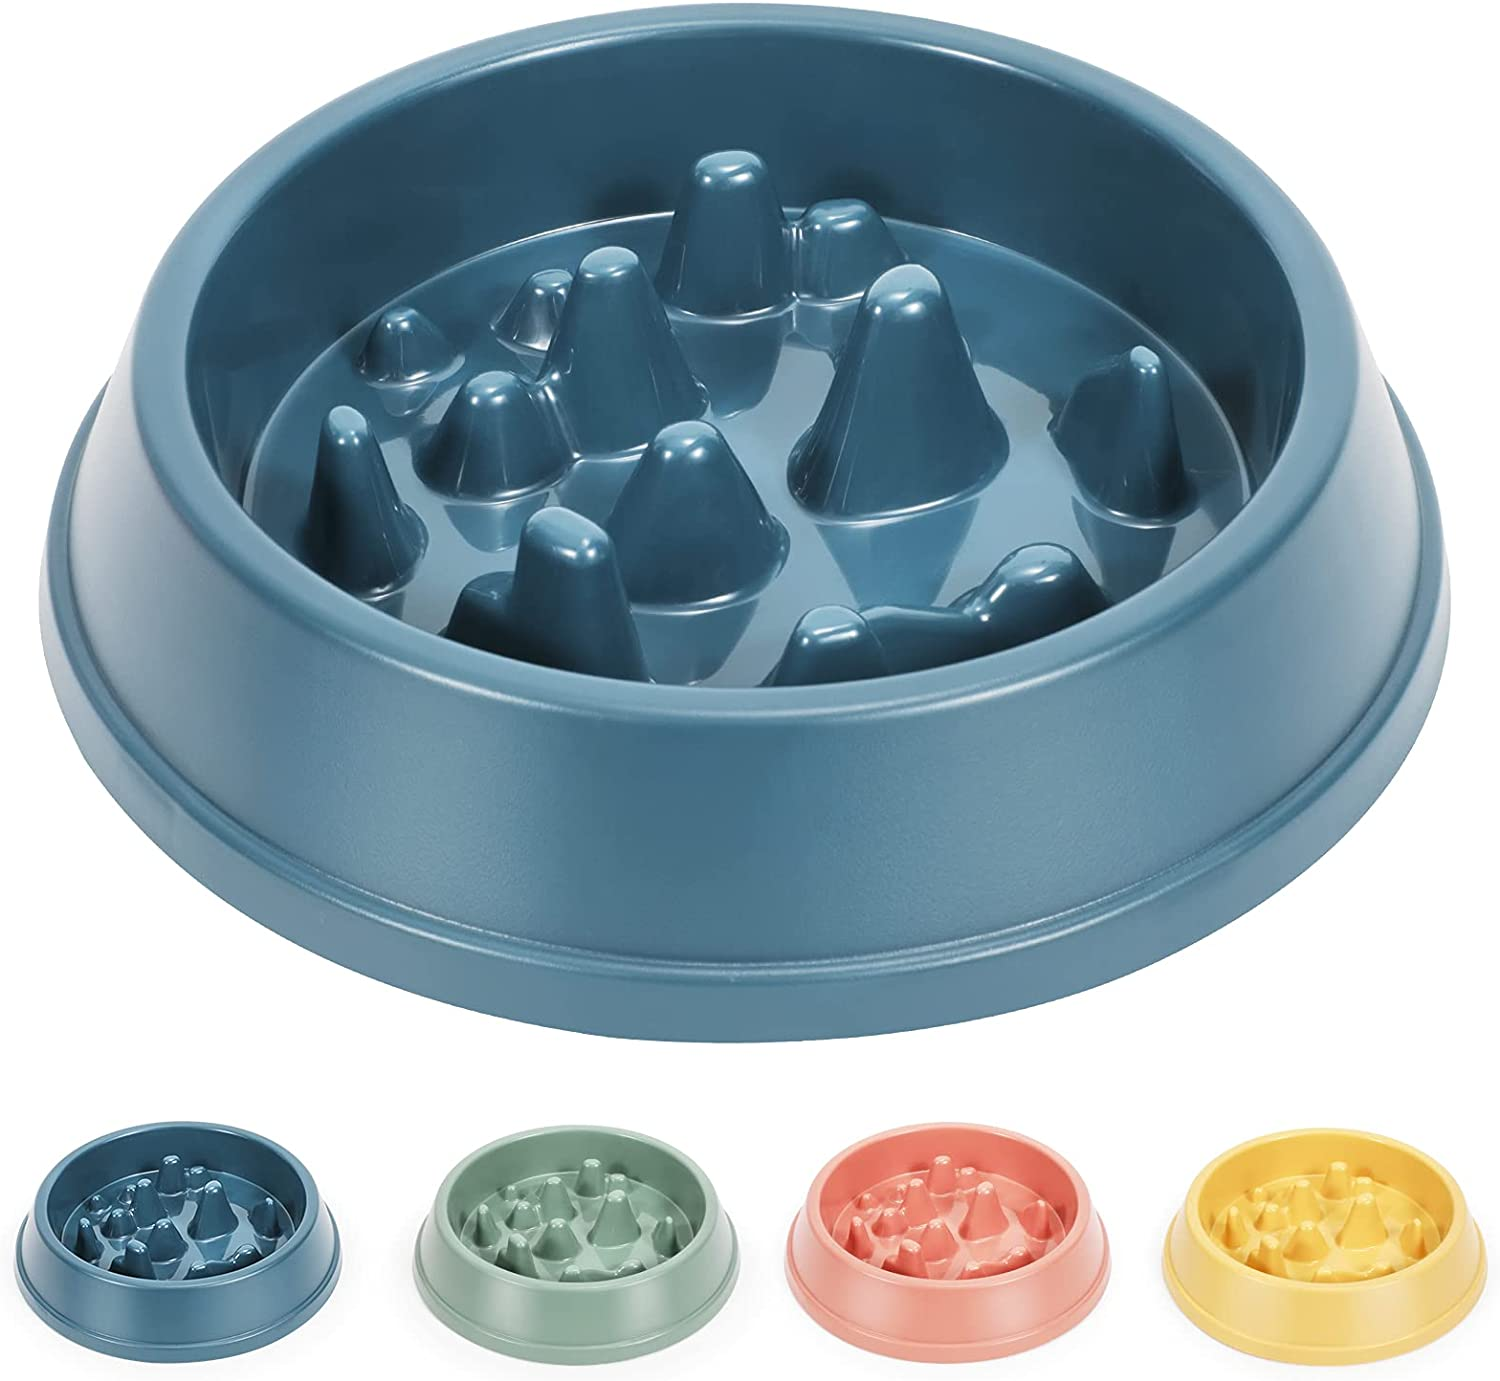 WHIPPY Slow Feeder Dog Bowl Dishes for Small Medium Dog Cat Non Slip Slow Eating Healthy Puppy Bowl Puzzle Maze Fun Feeder Interactive Bloat Stop Dog Pet Bowl, Blue